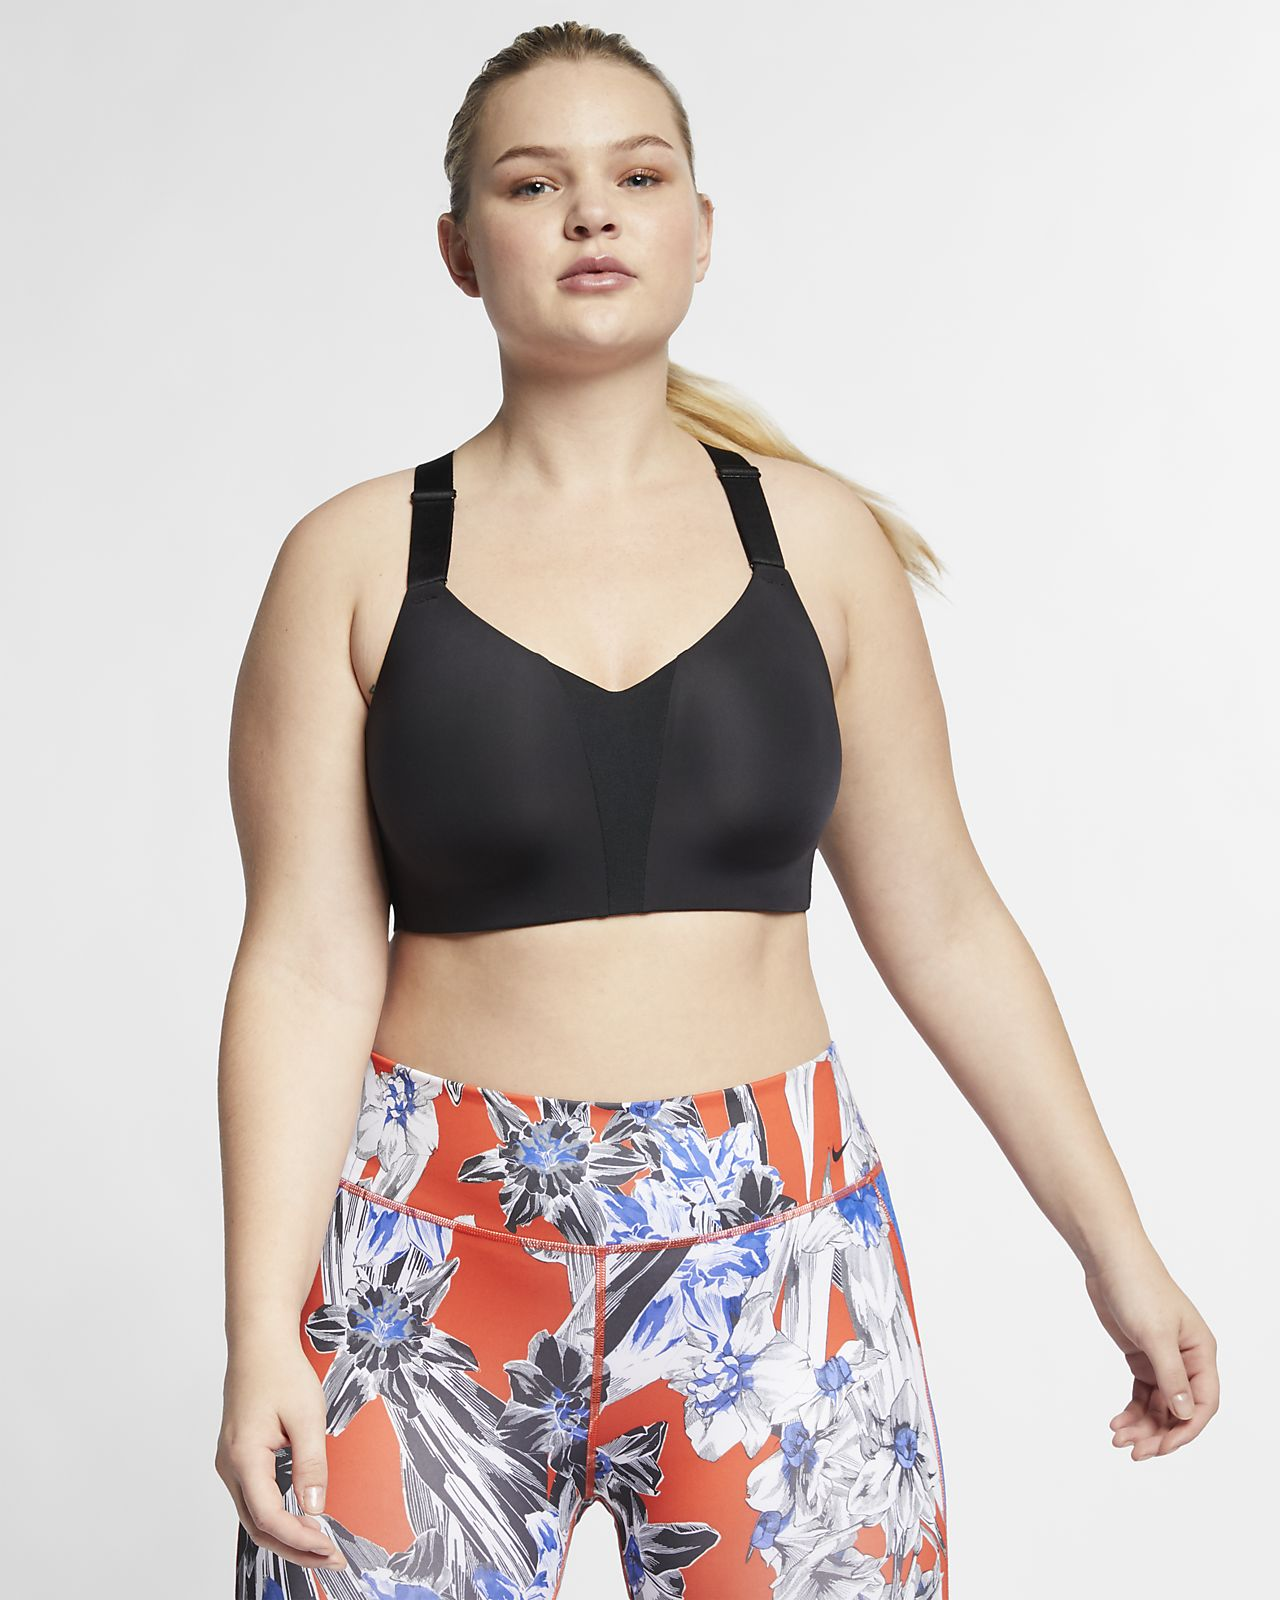 Nike Rival Women's High-Support Underwire Sports Bra (Plus Size)